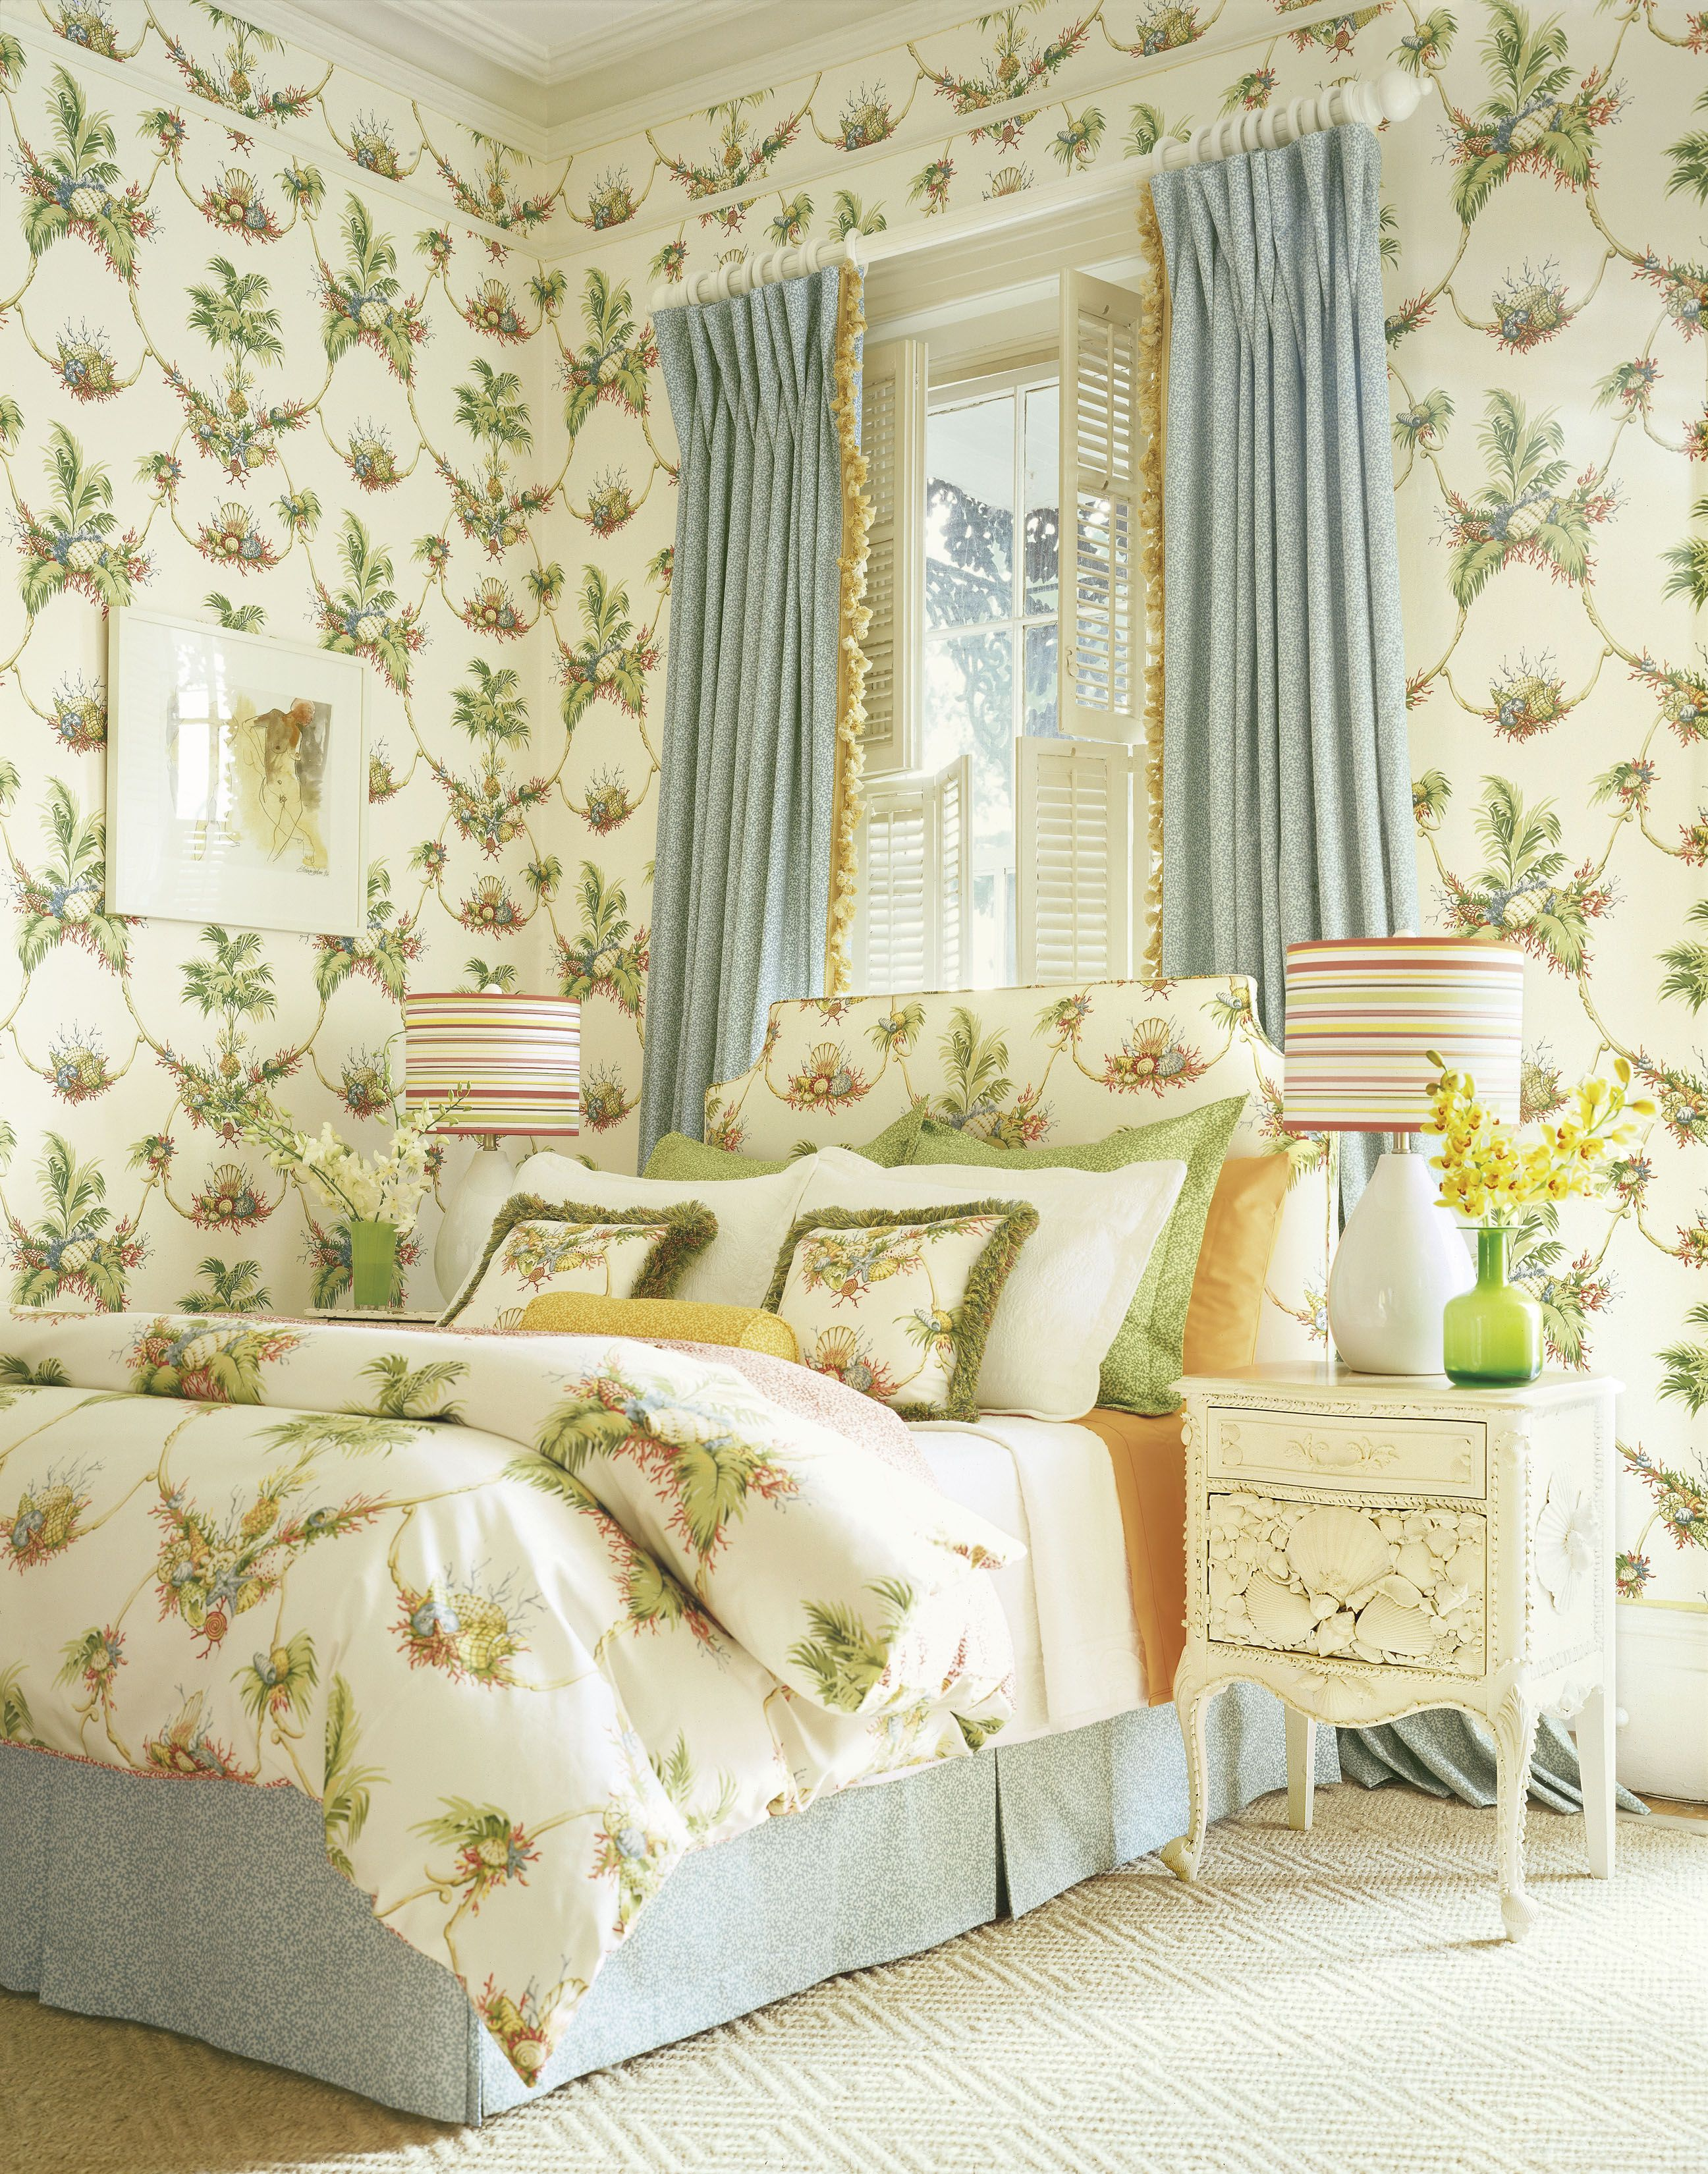 White curtain wallpaper - Sand Key Wallpaper And Matching Fabric In White From The Laguna Collection